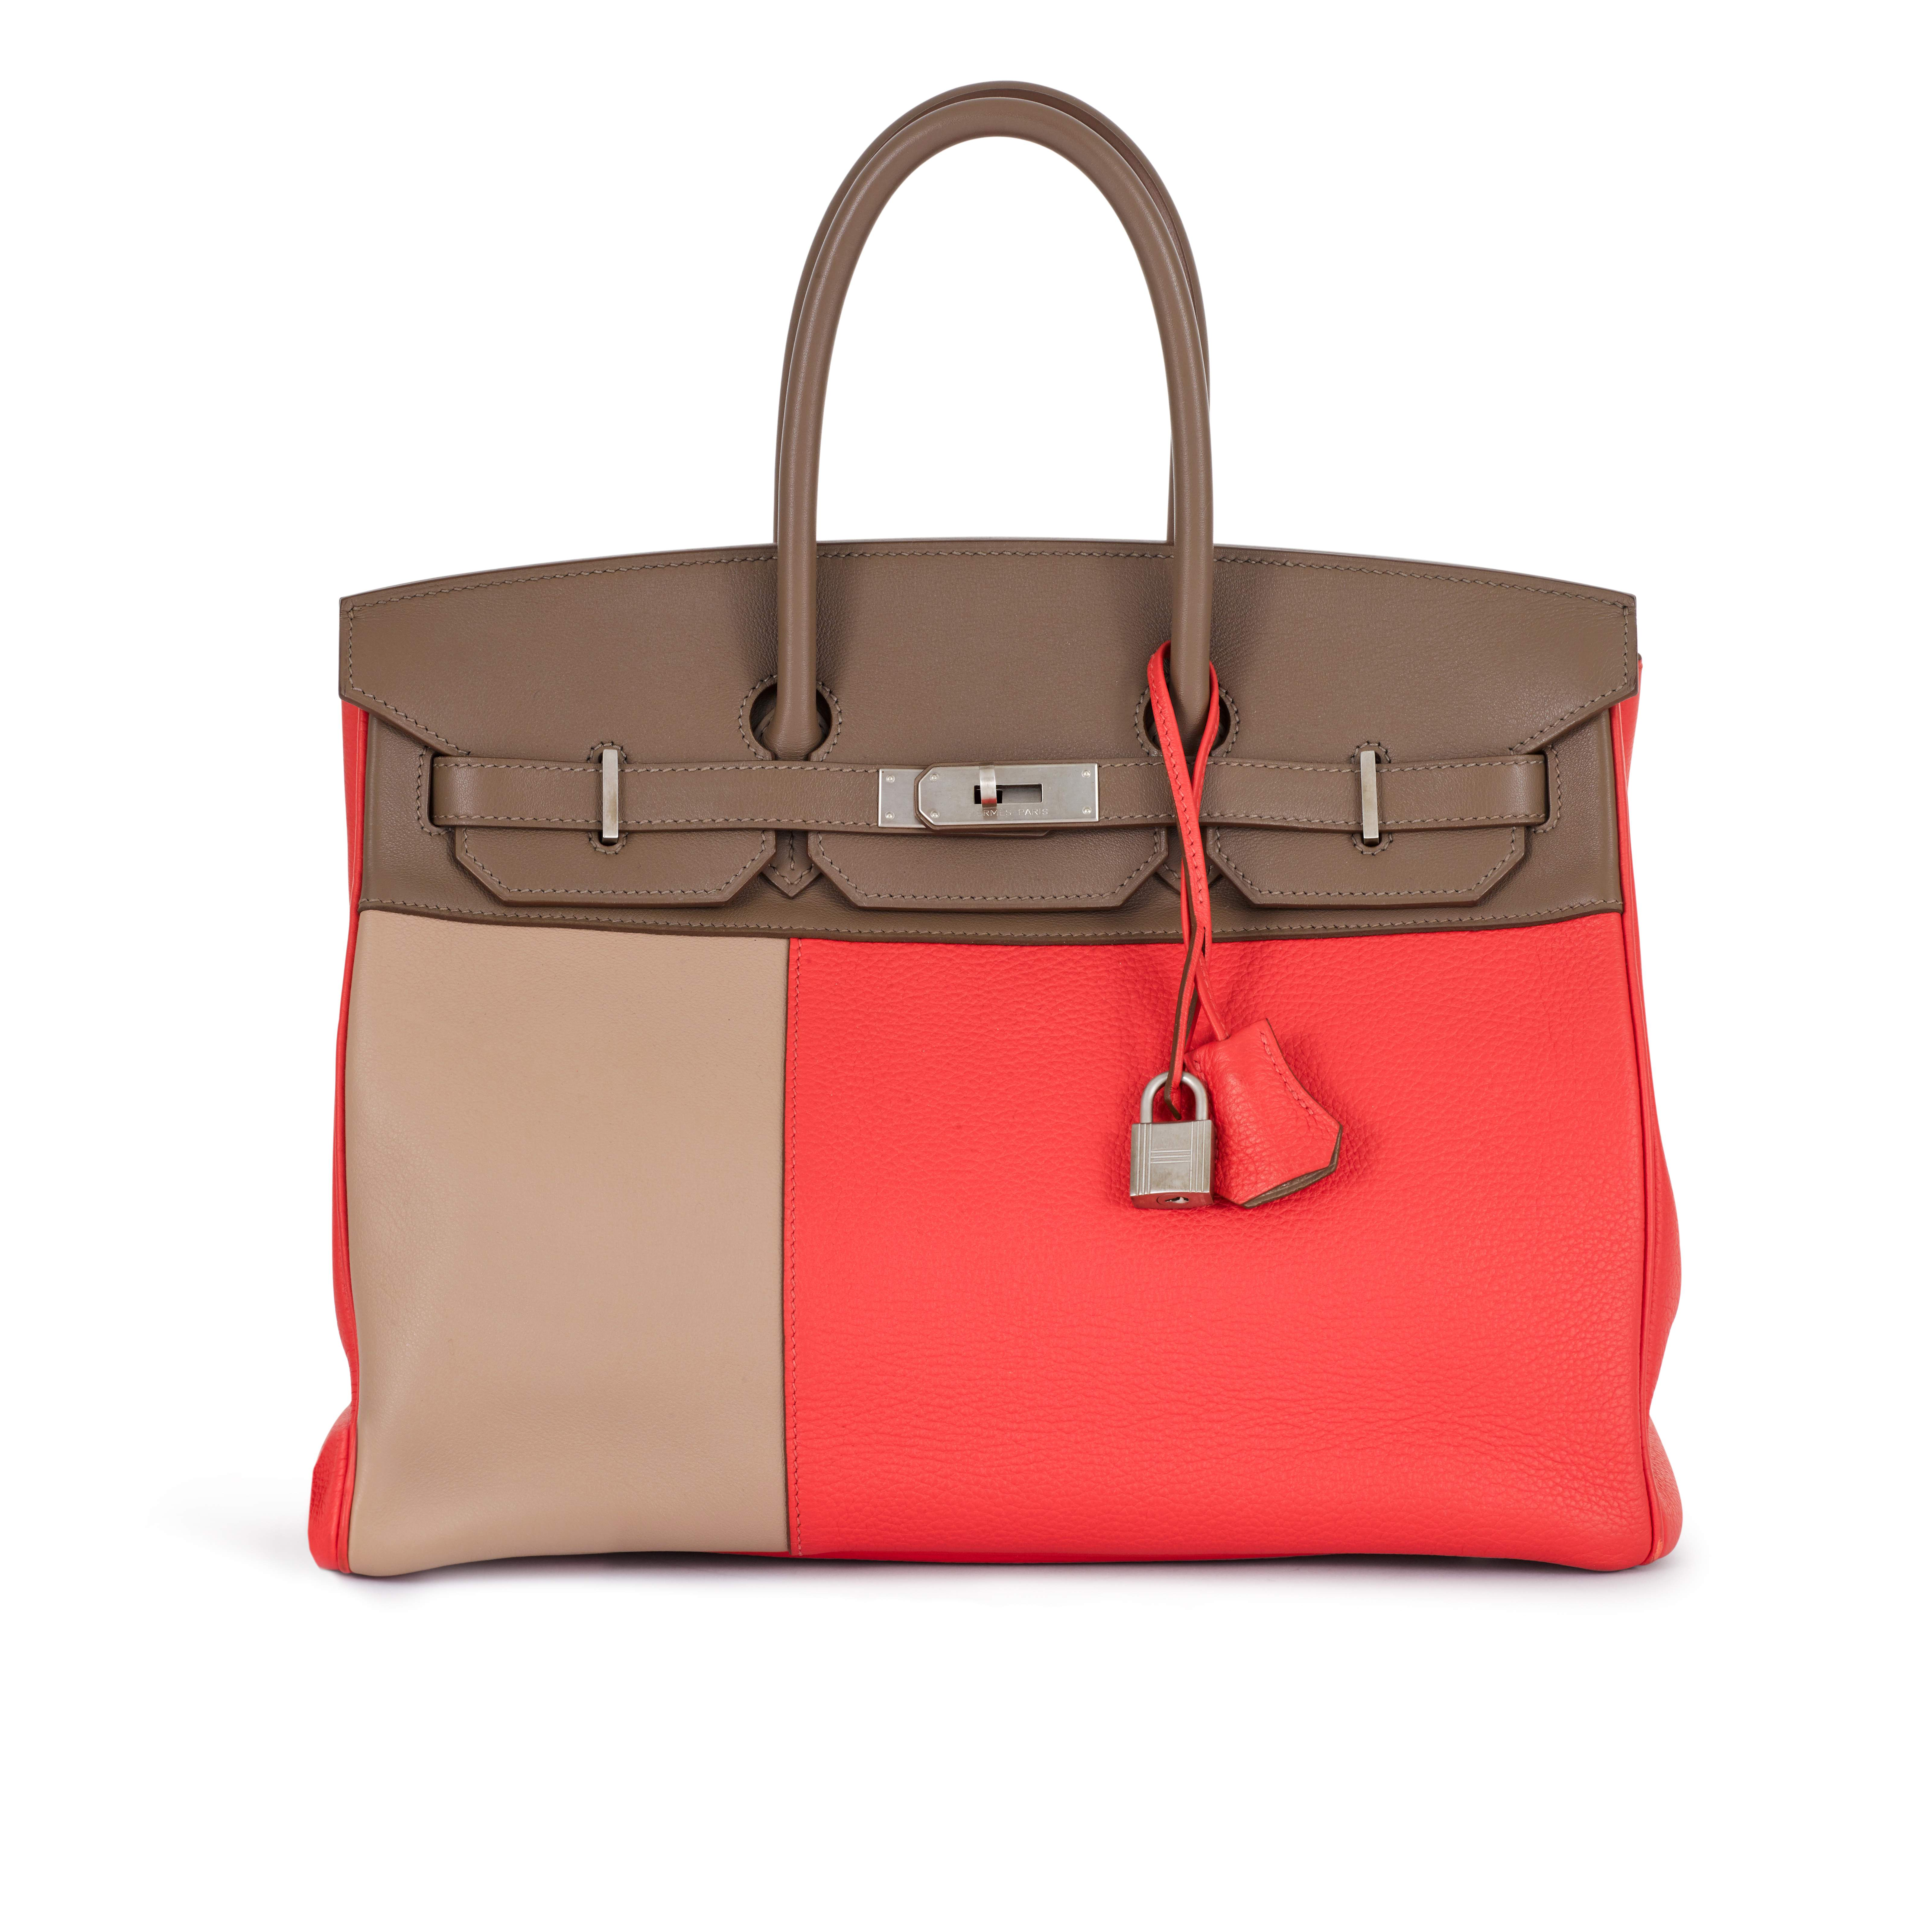 View full screen - View 1 of Lot 6.  Rose Jaipur, Etoupe and Argile in Swift and Clemence Leather Birkin 35 Palladium Hardware, 2012.